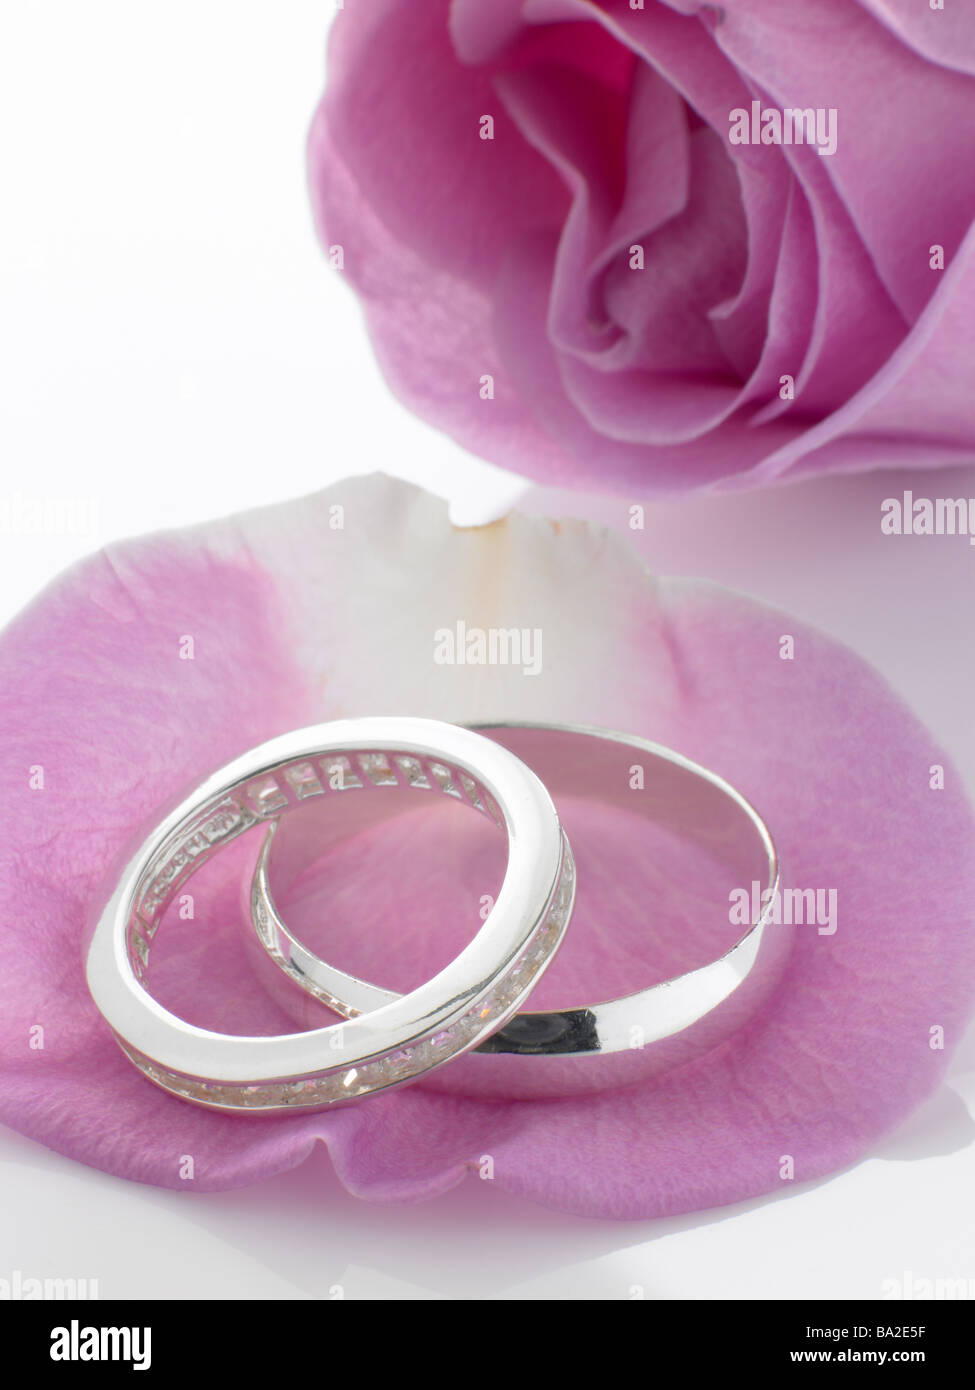 Silver Wedding Rings Resting On Rose Petals Stock Photo: 23411963 ...